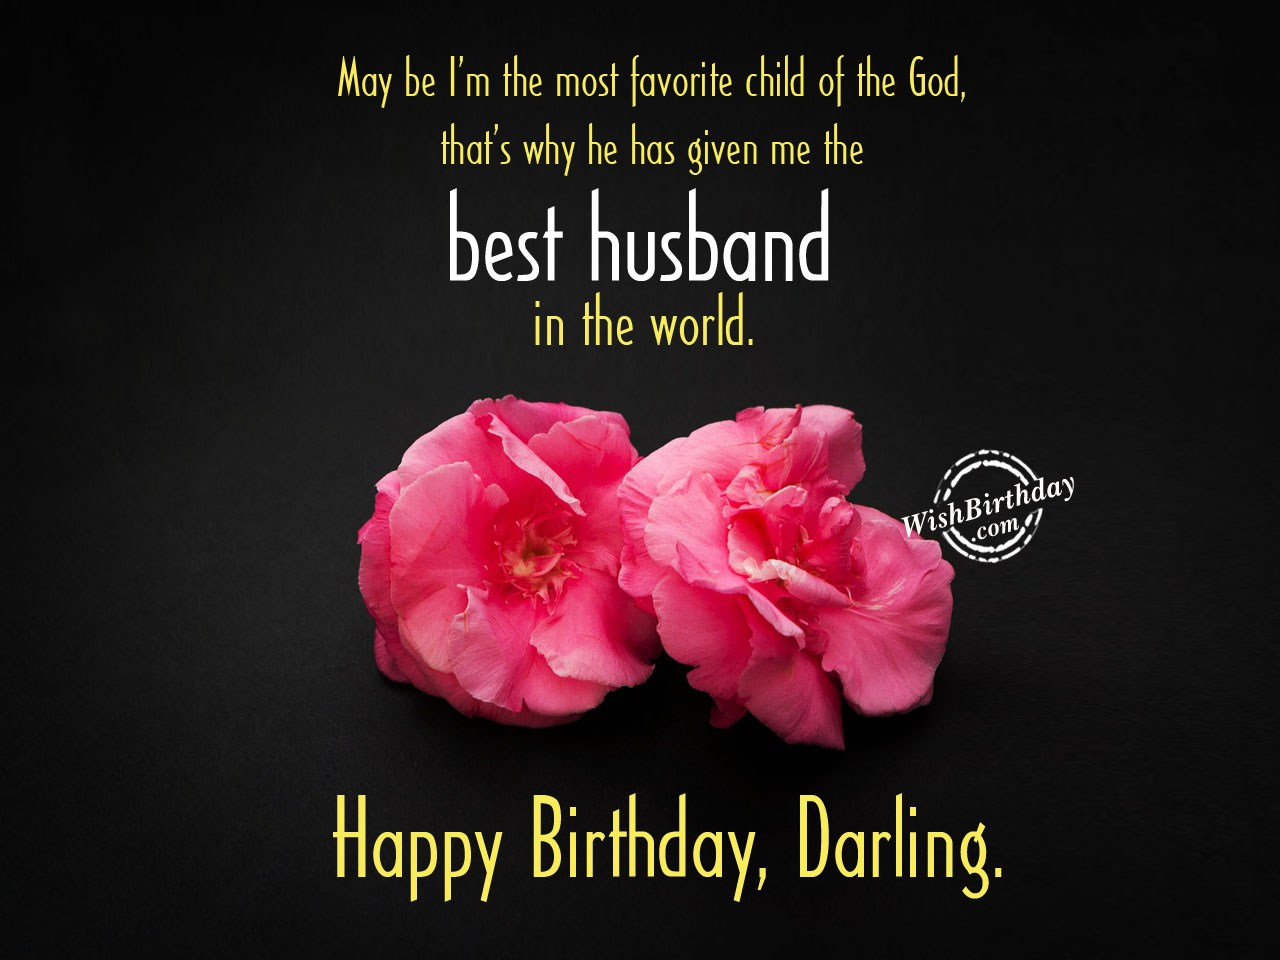 birthday message for husband in hindi ; May-be-i-am-the-most-favorite-child-of-the-God